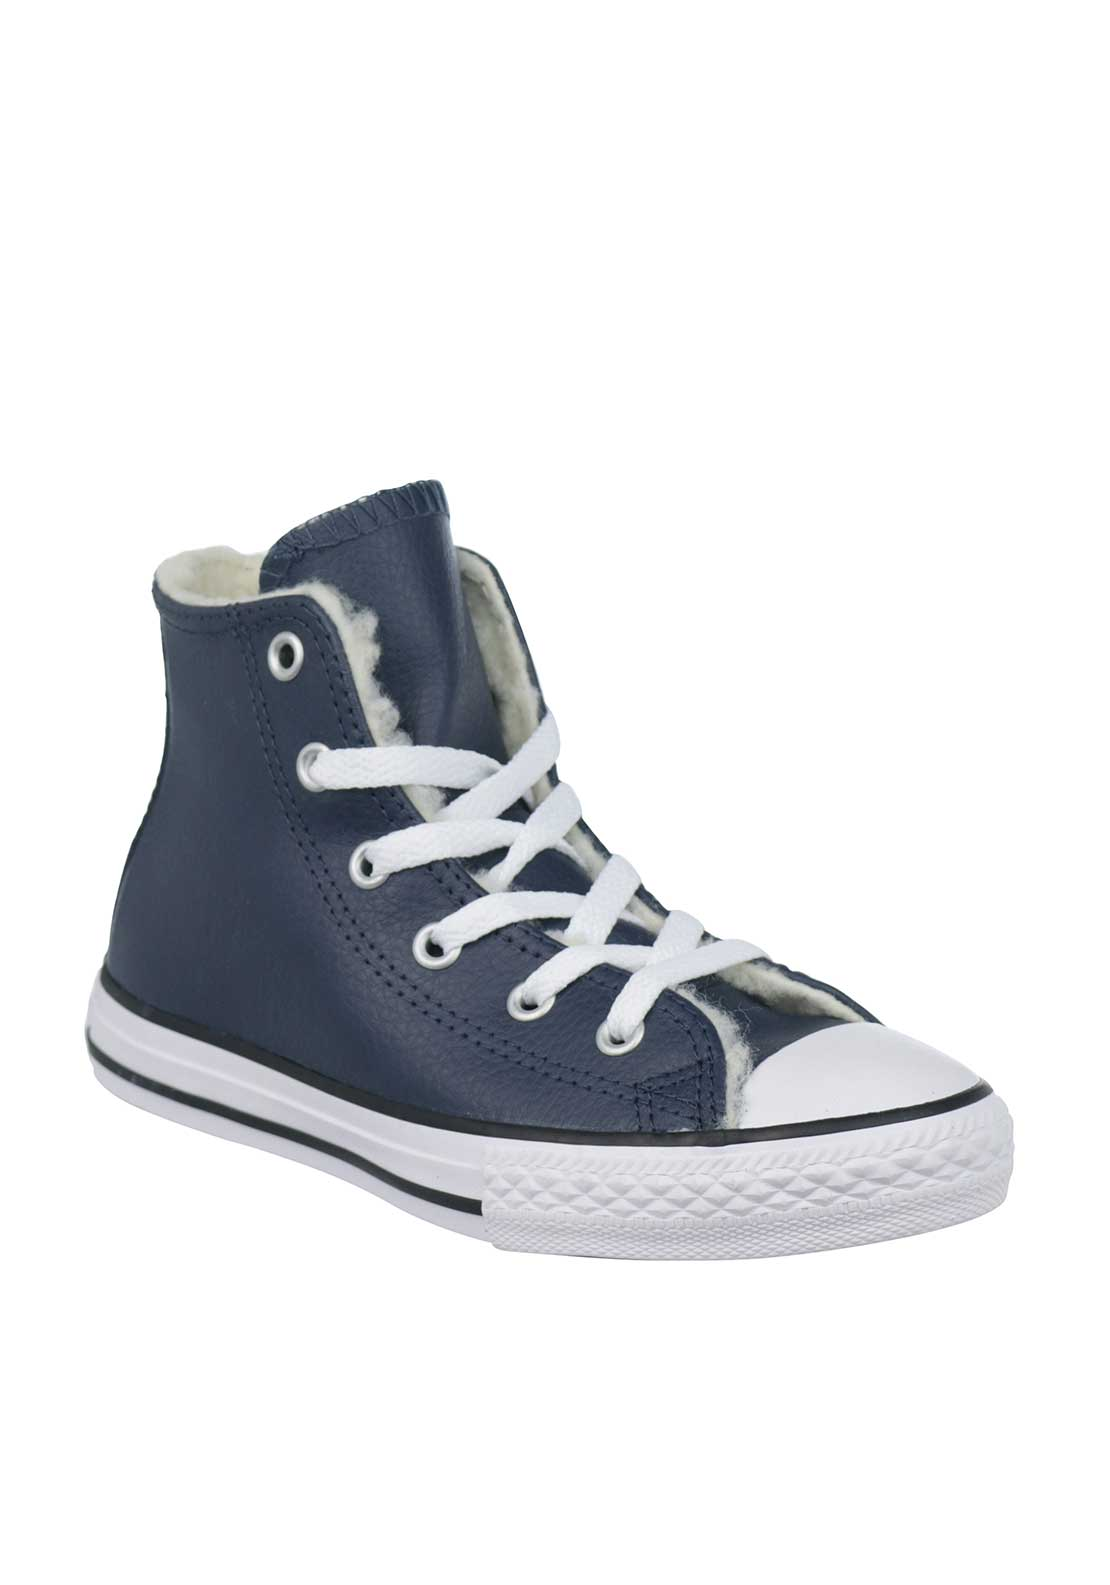 Converse Kids Leather Hi Top Trainers, Navy